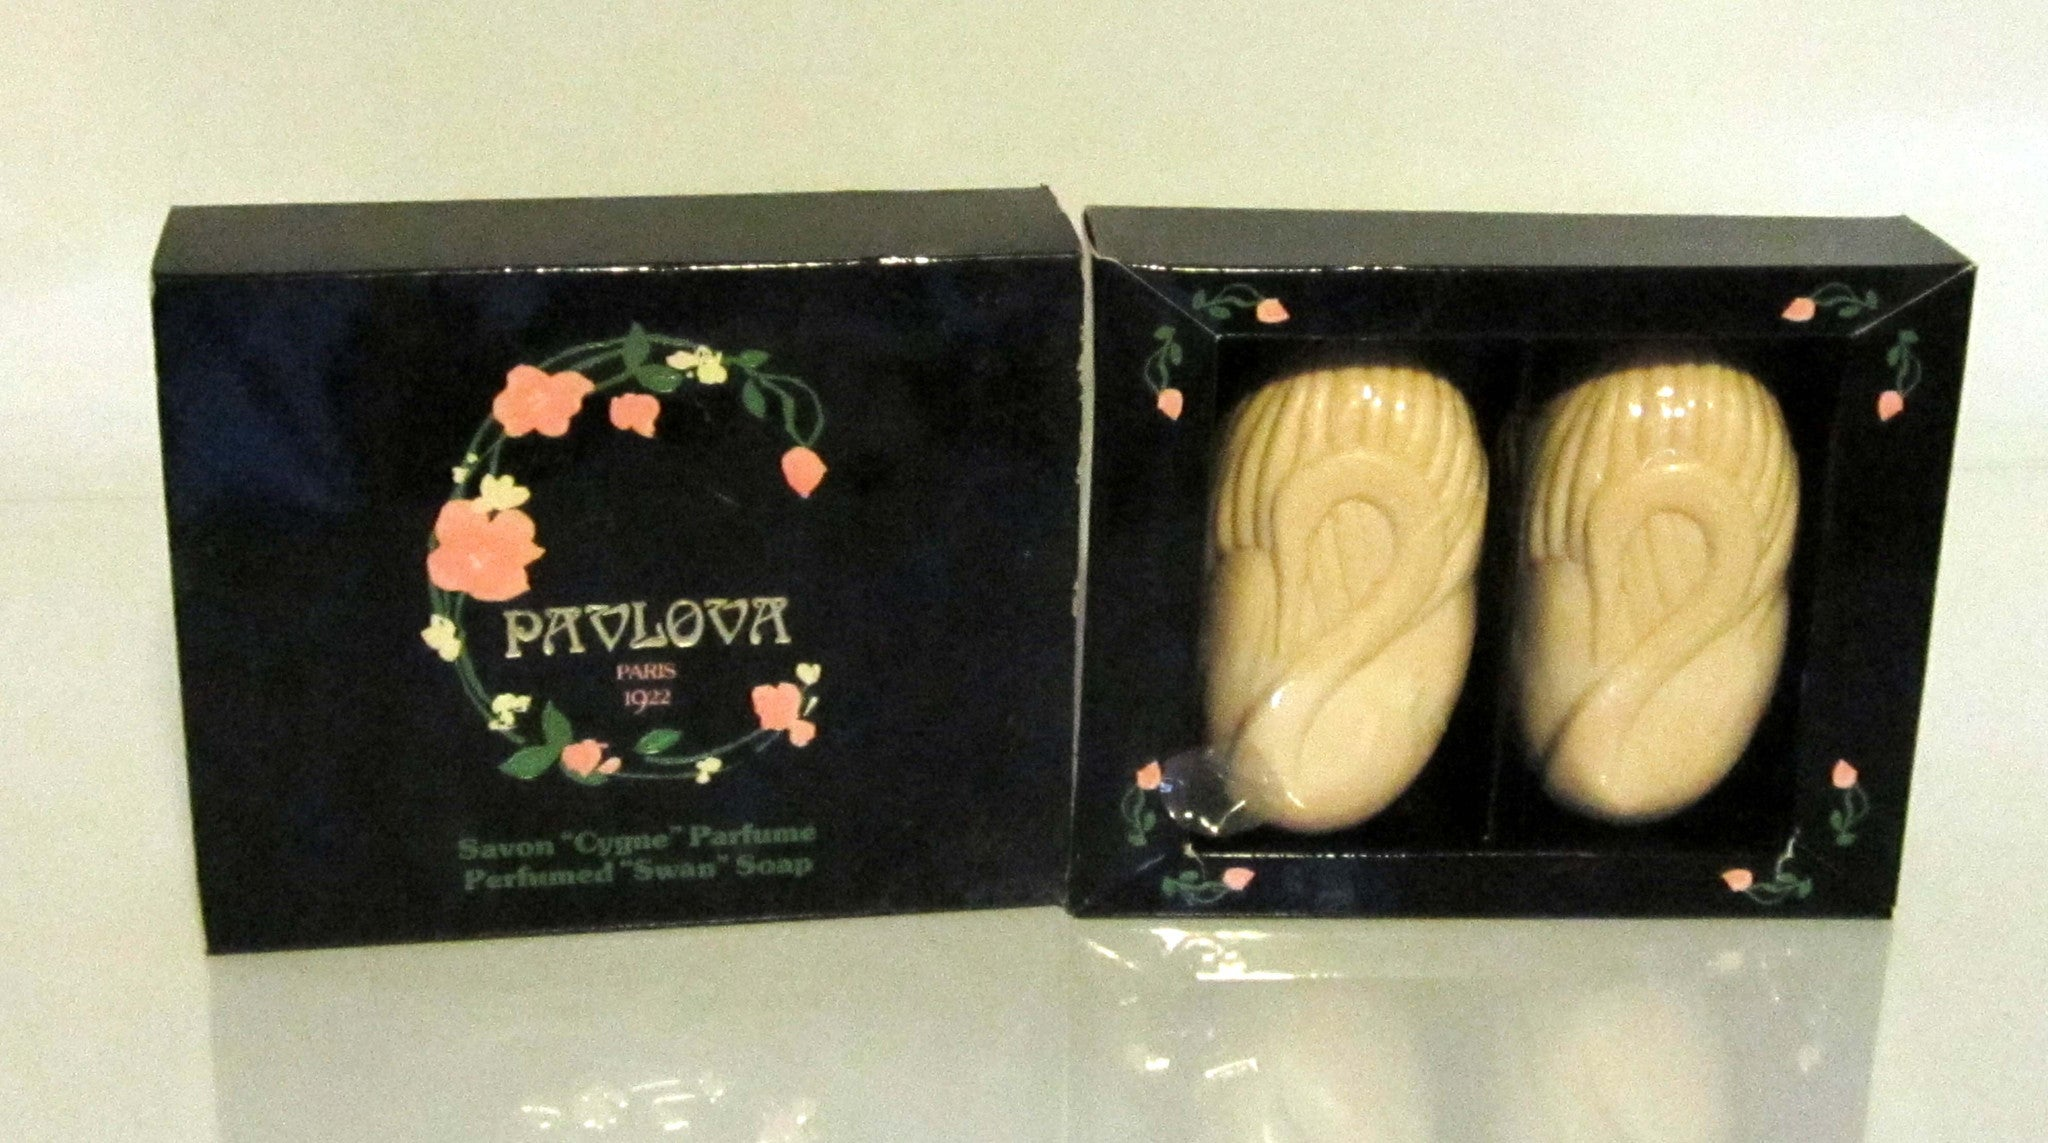 Pavlova Paris 1922 Perfumed Swan Soap